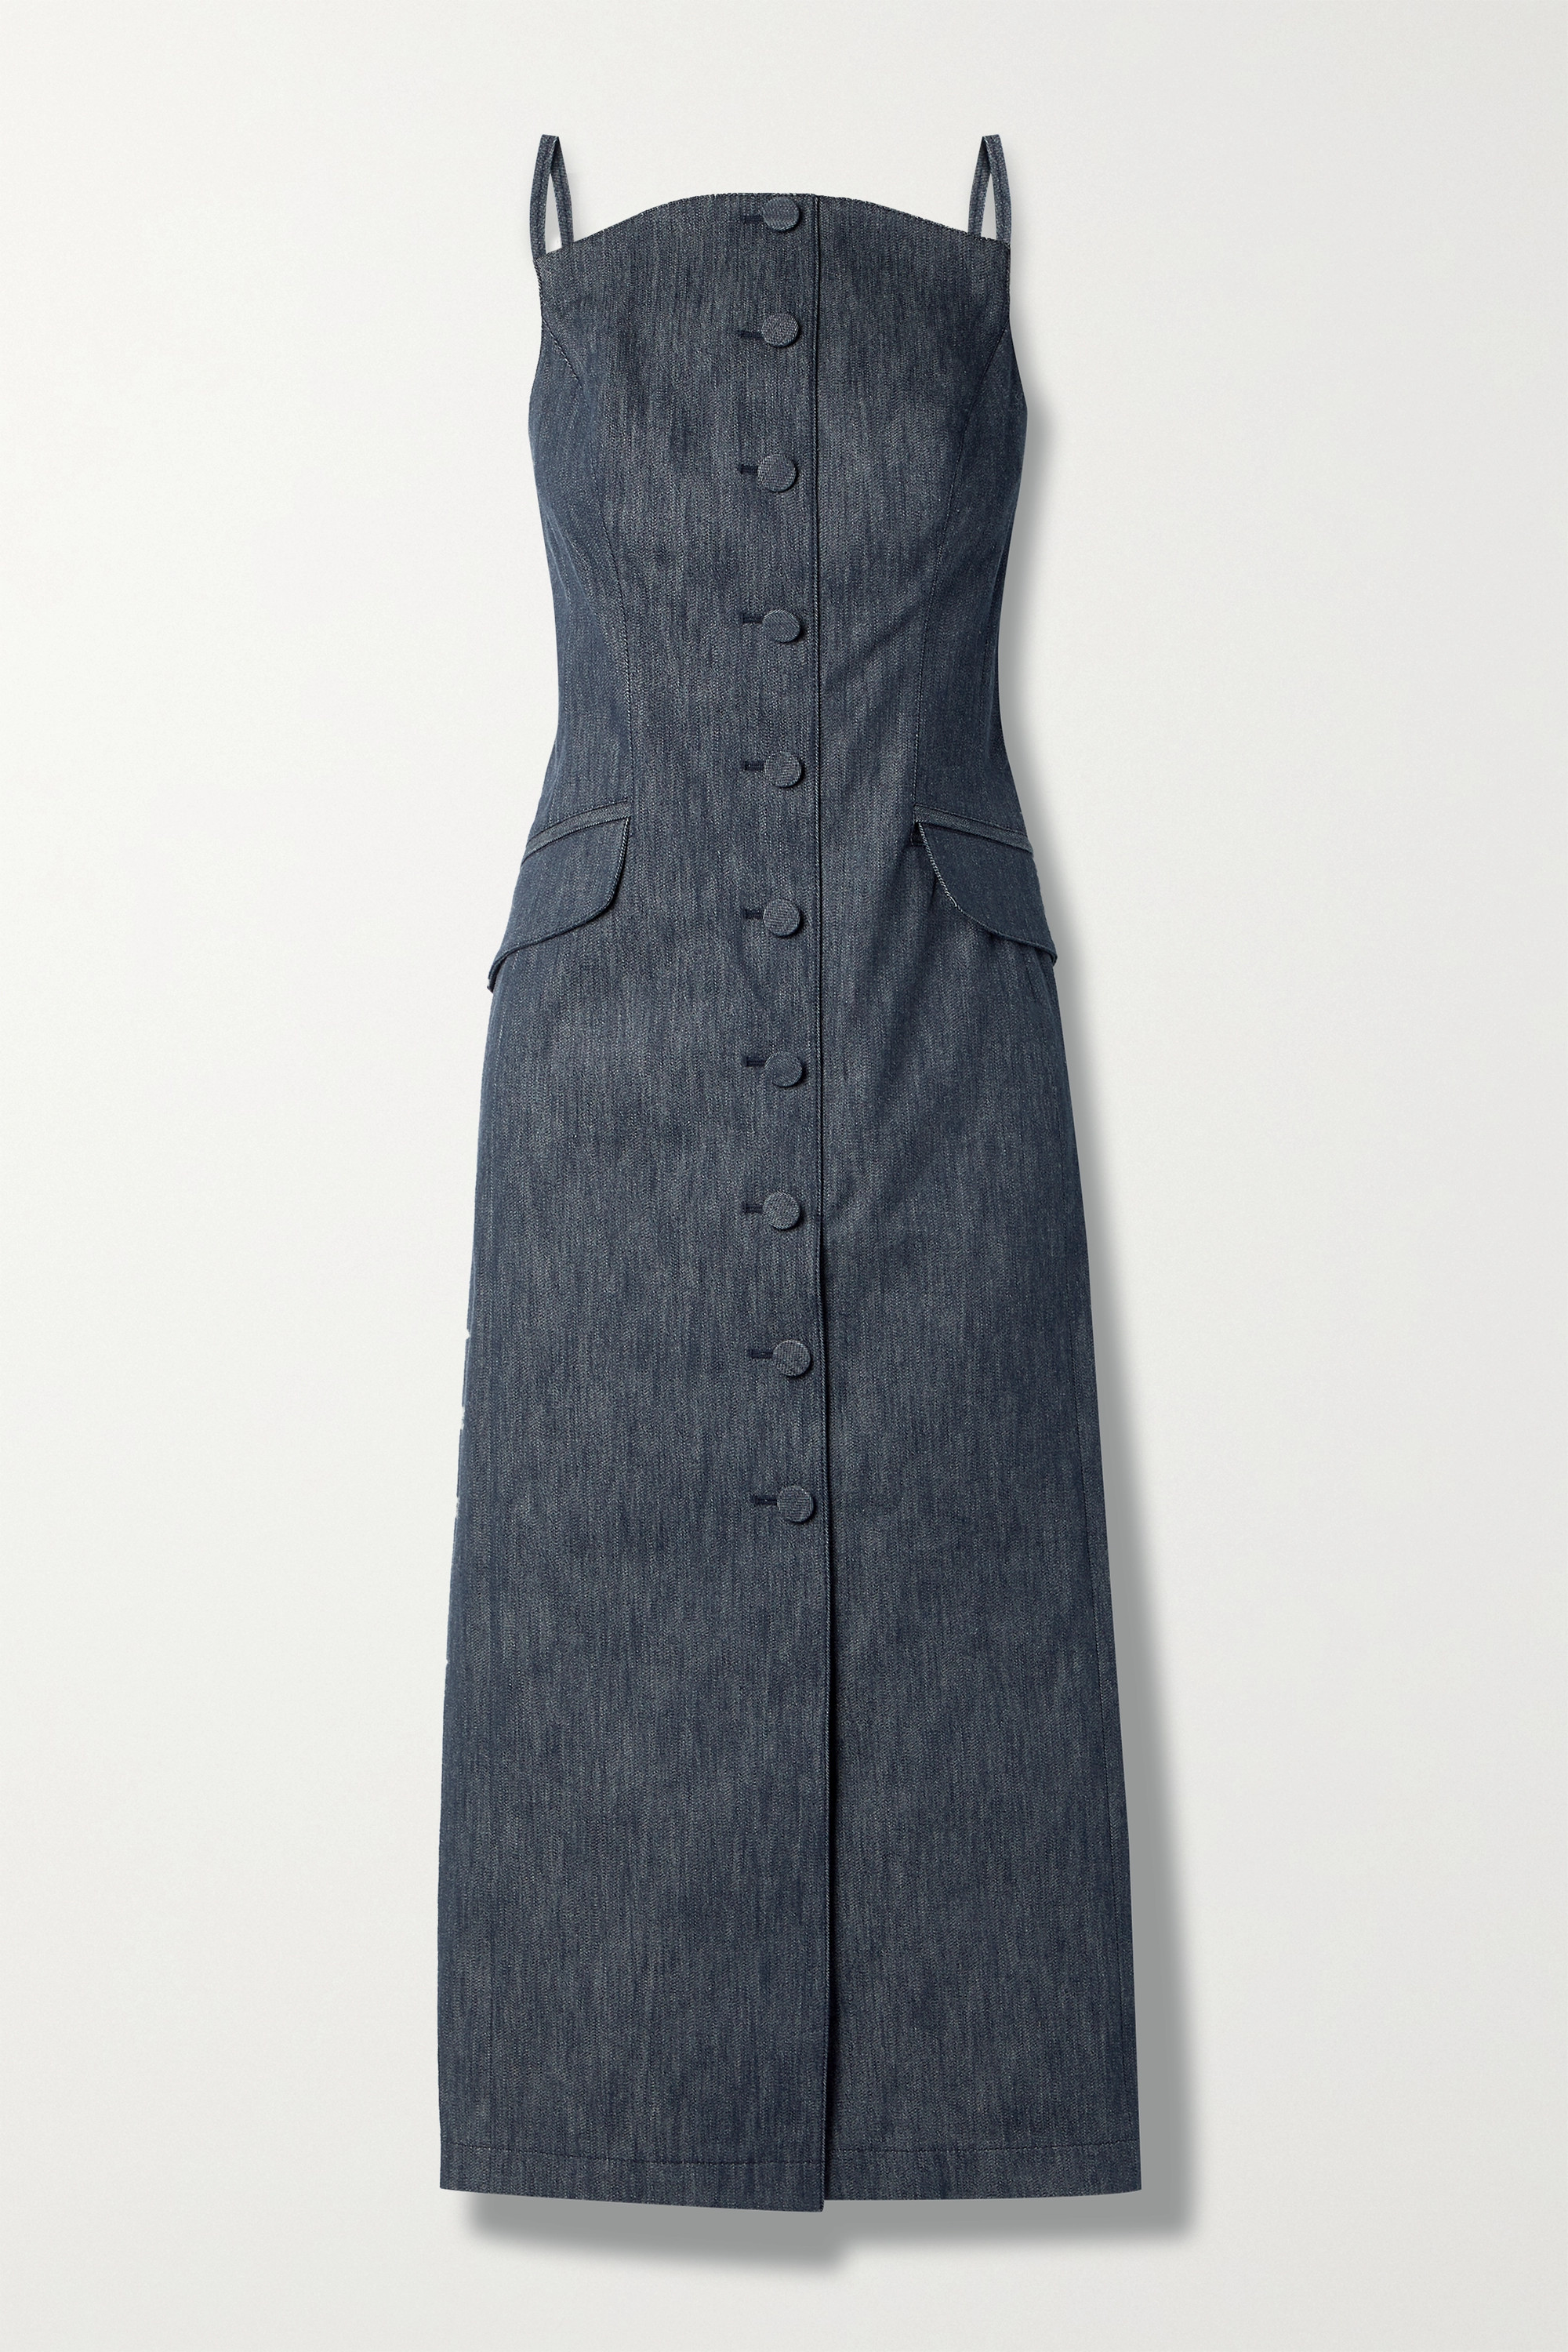 Carolina Herrera Denim midi dress